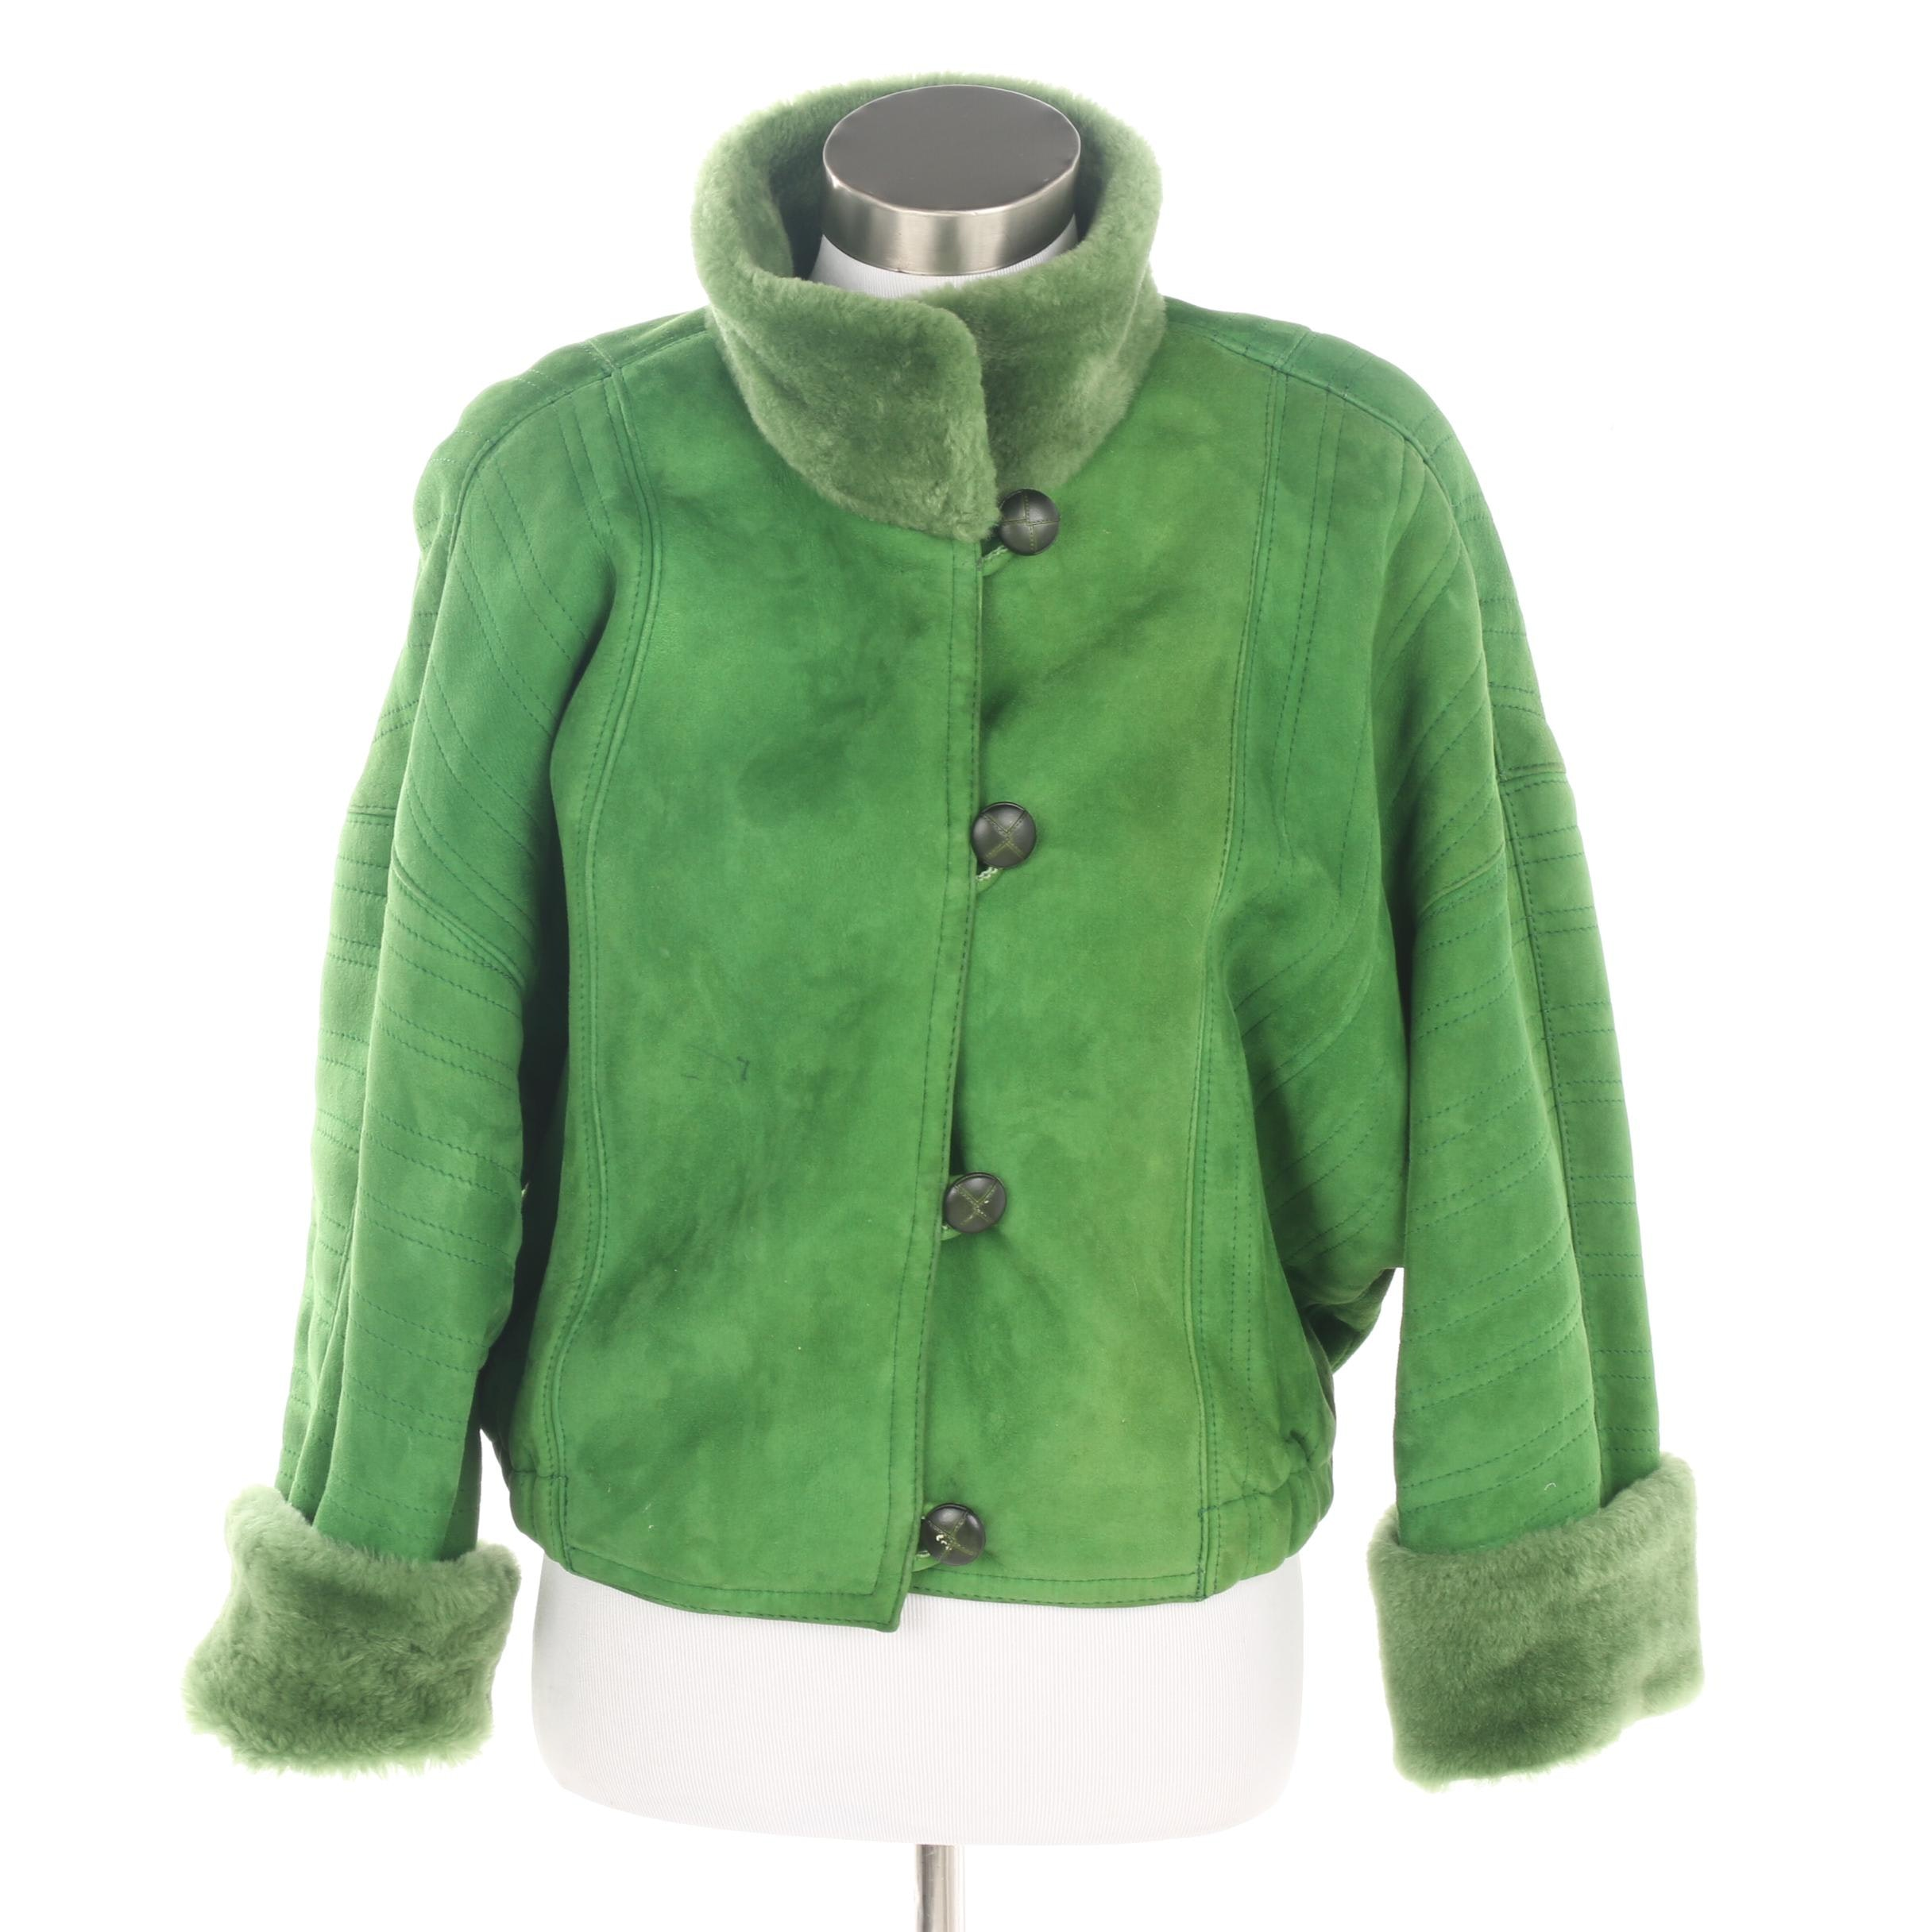 Women's Vintage Oscar de la Renta Green Suede and Shearling Coat